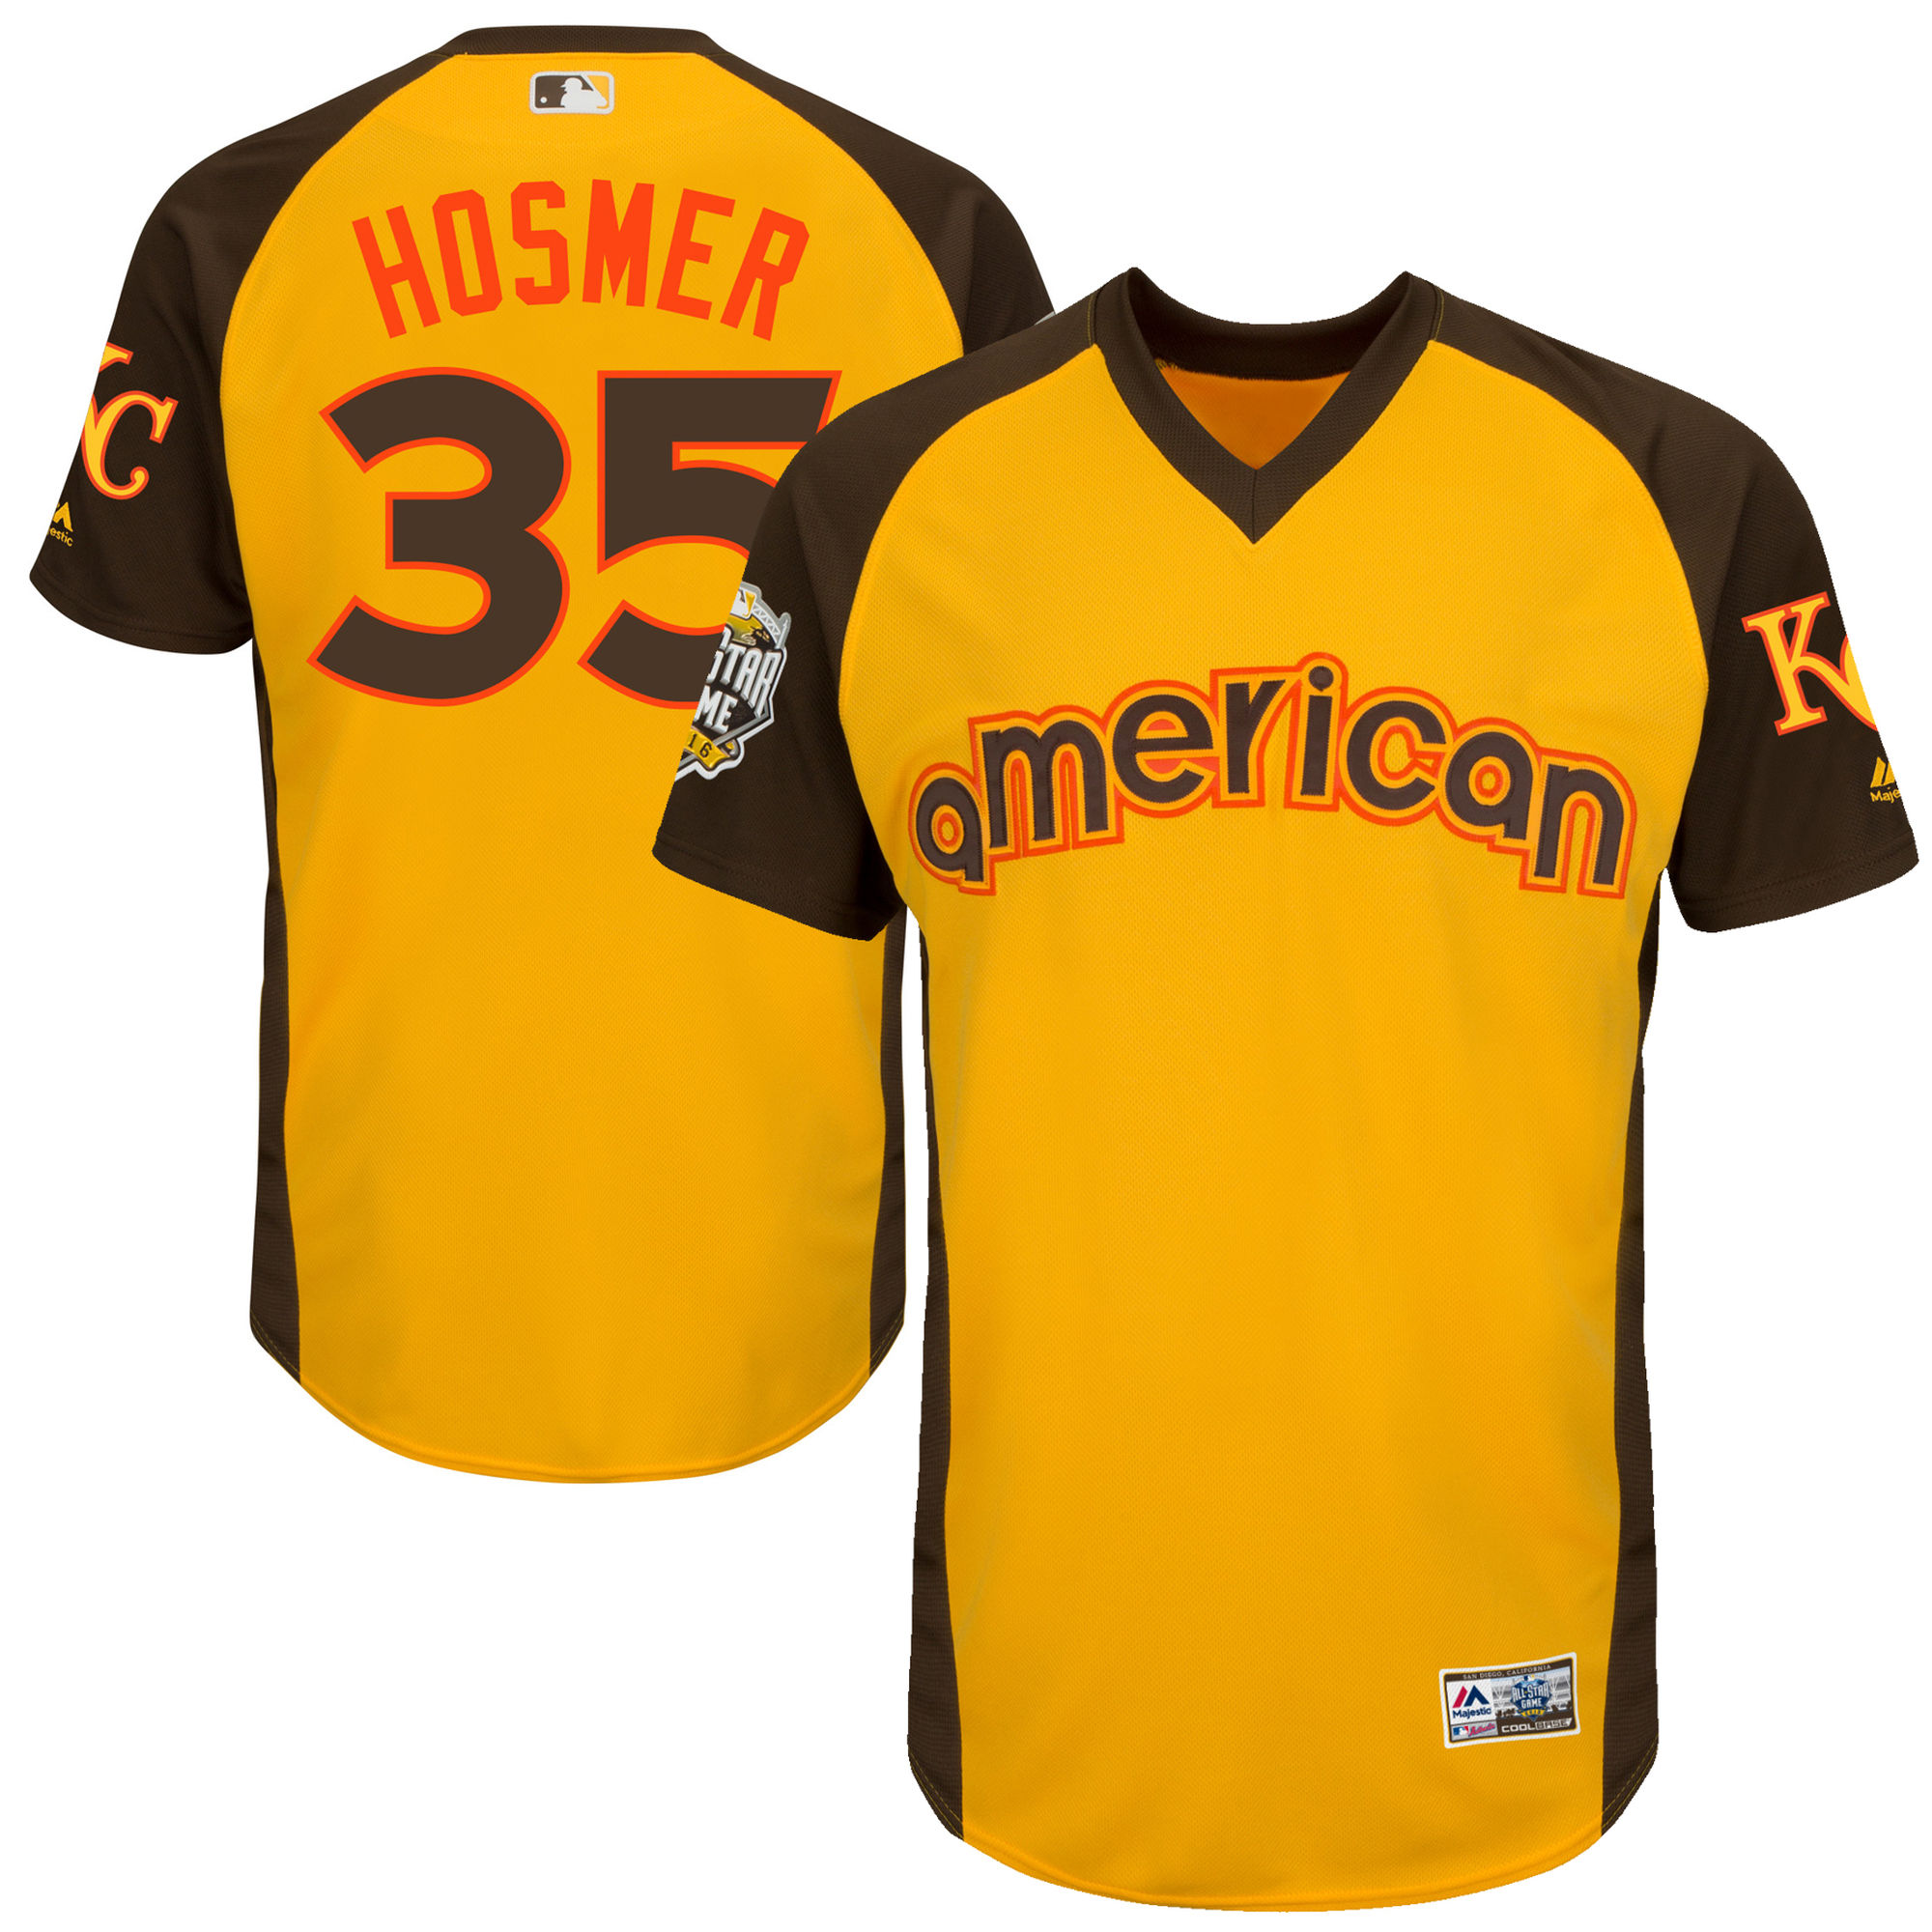 Royals 35 Eric Hosmer Yellow Youth 2016 All-Star Game Cool Base Batting Practice Player Jersey